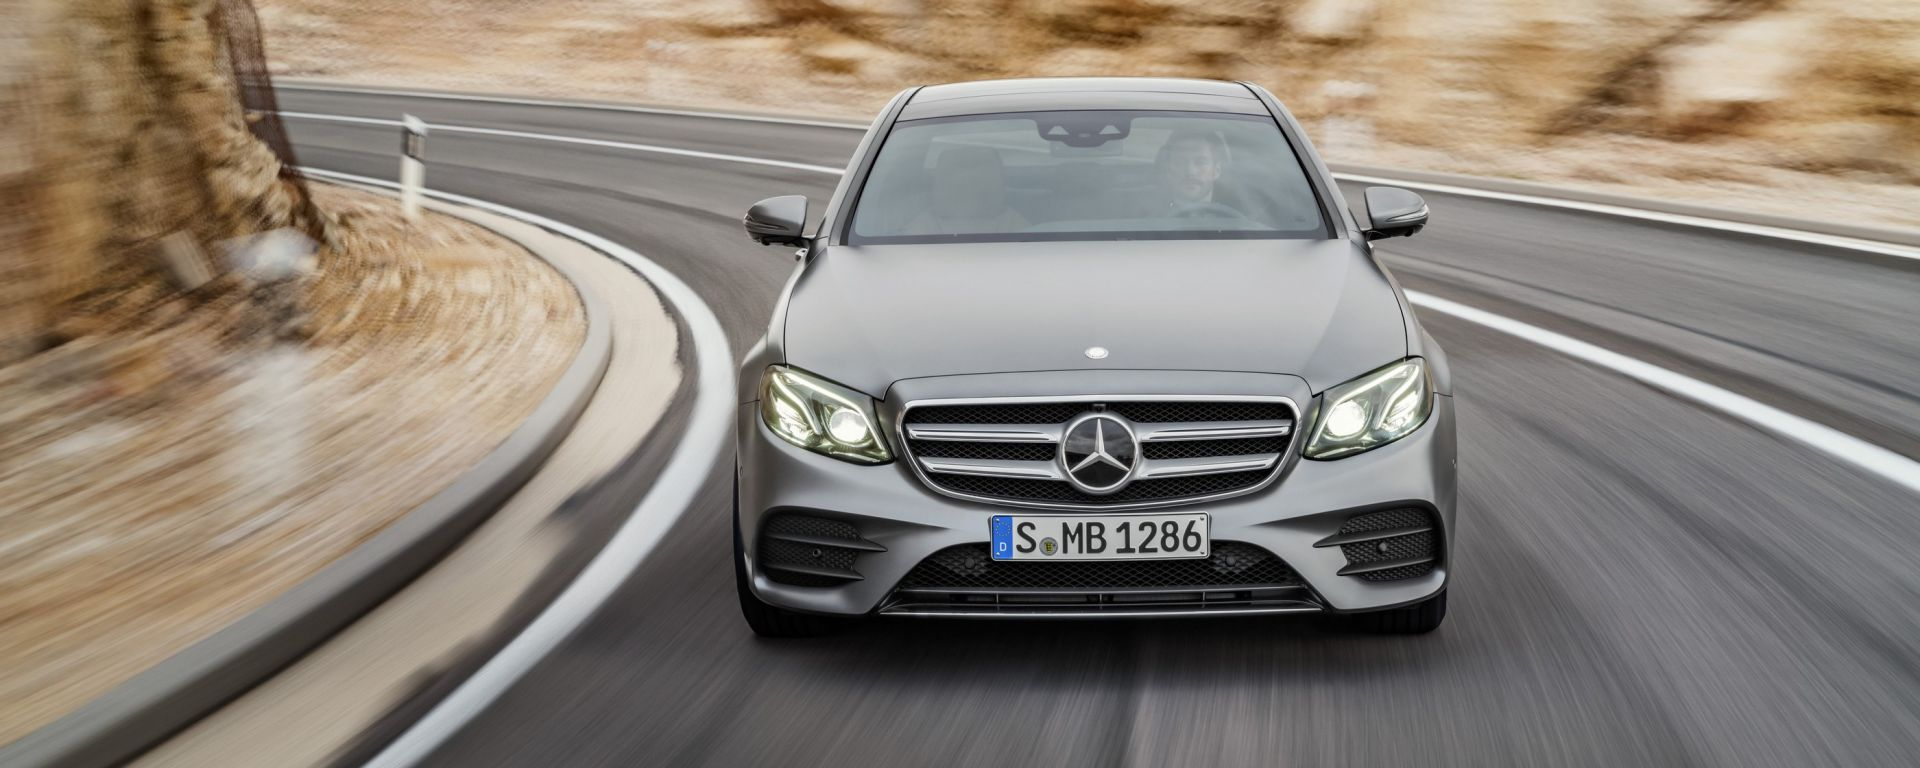 Mercedes Classe E 2016: il video